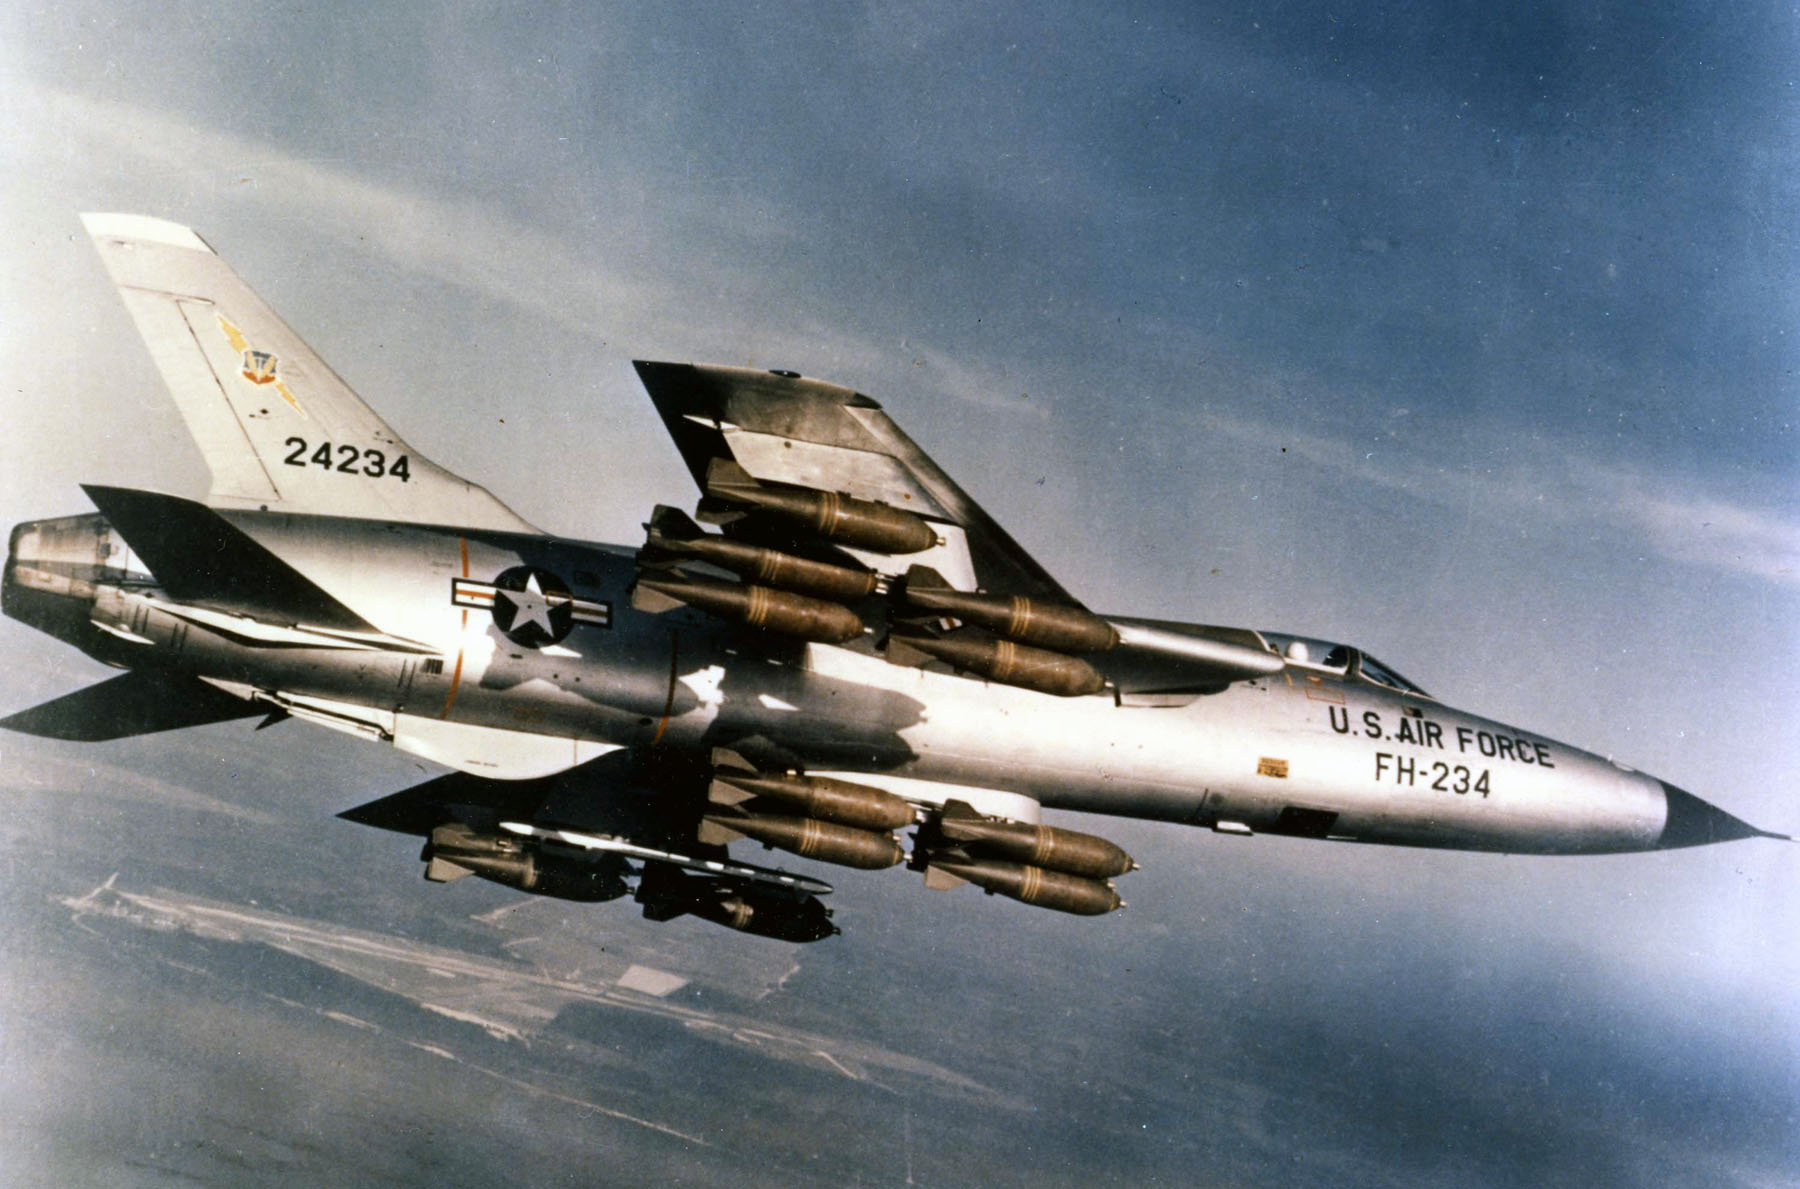 republic_f-105d-30-re_sn_62-4234_in_flight_with_full_bomb_load_060901-f-1234s-013.jpg